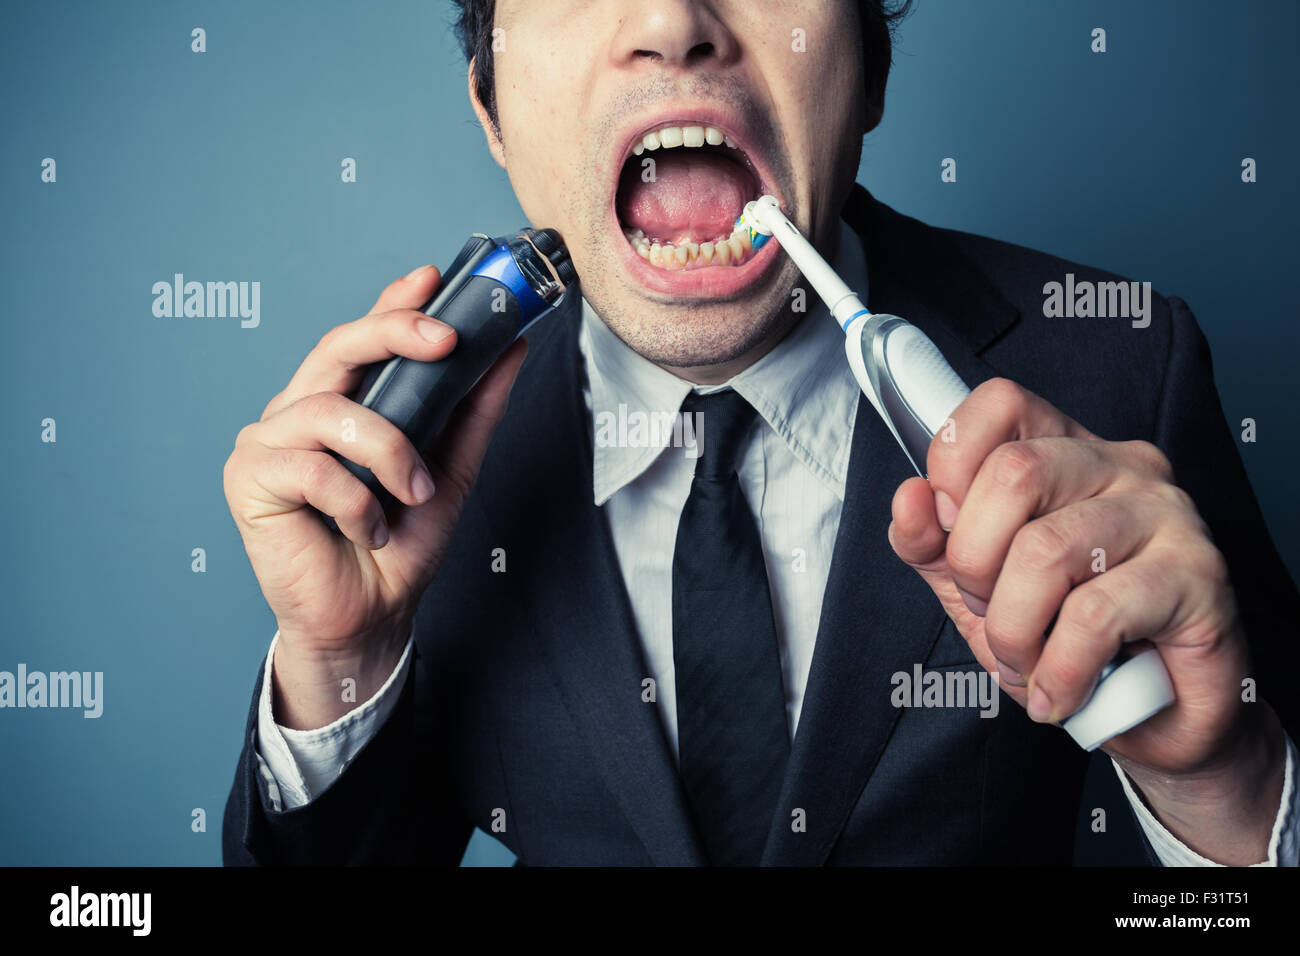 A stressed businessman is late and is shaving and brushing his teeth at the same time - Stock Image